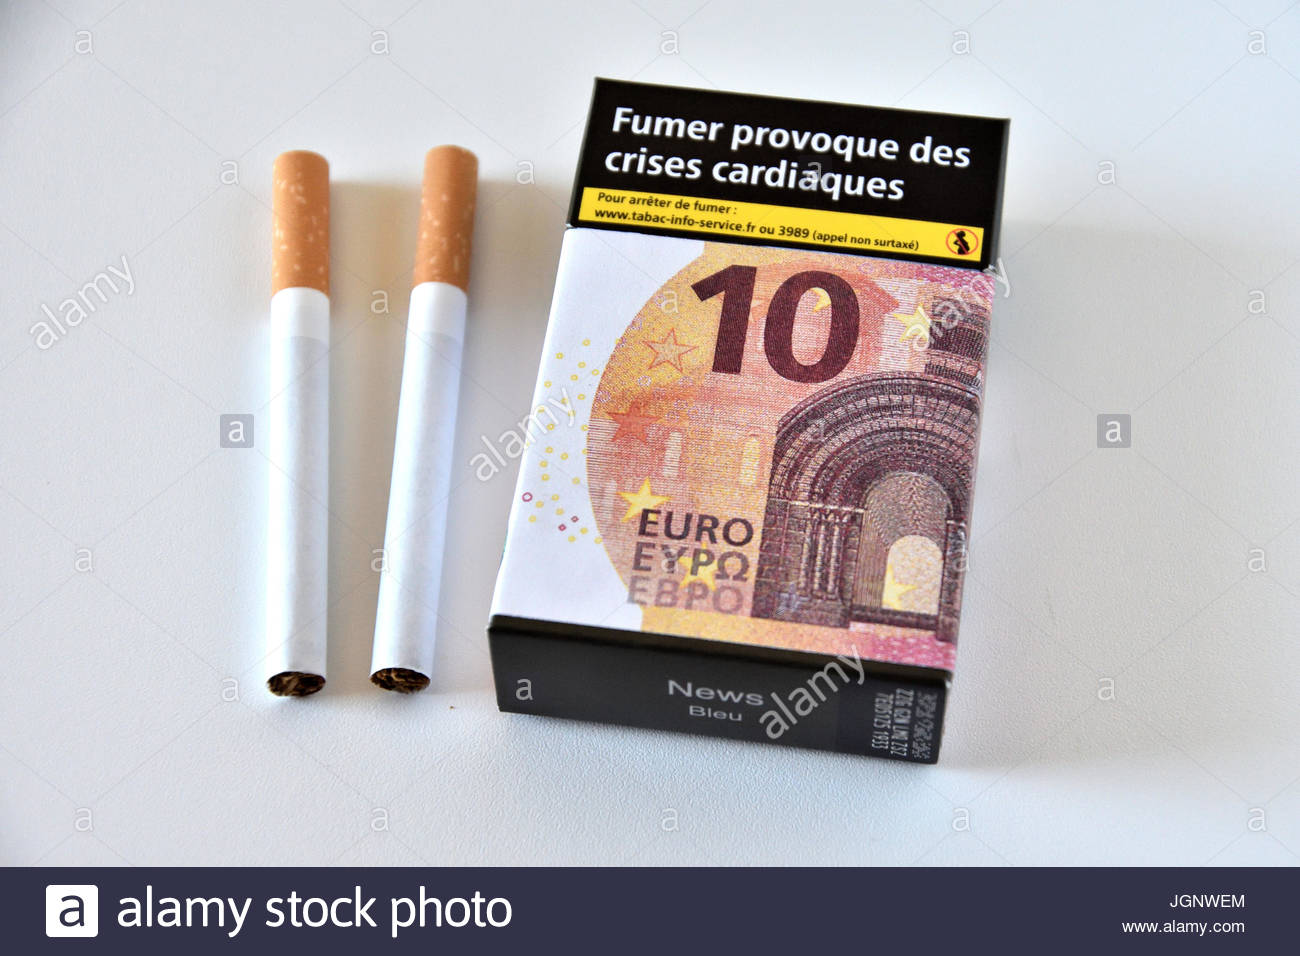 Buying cigarettes Viceroy in Ireland